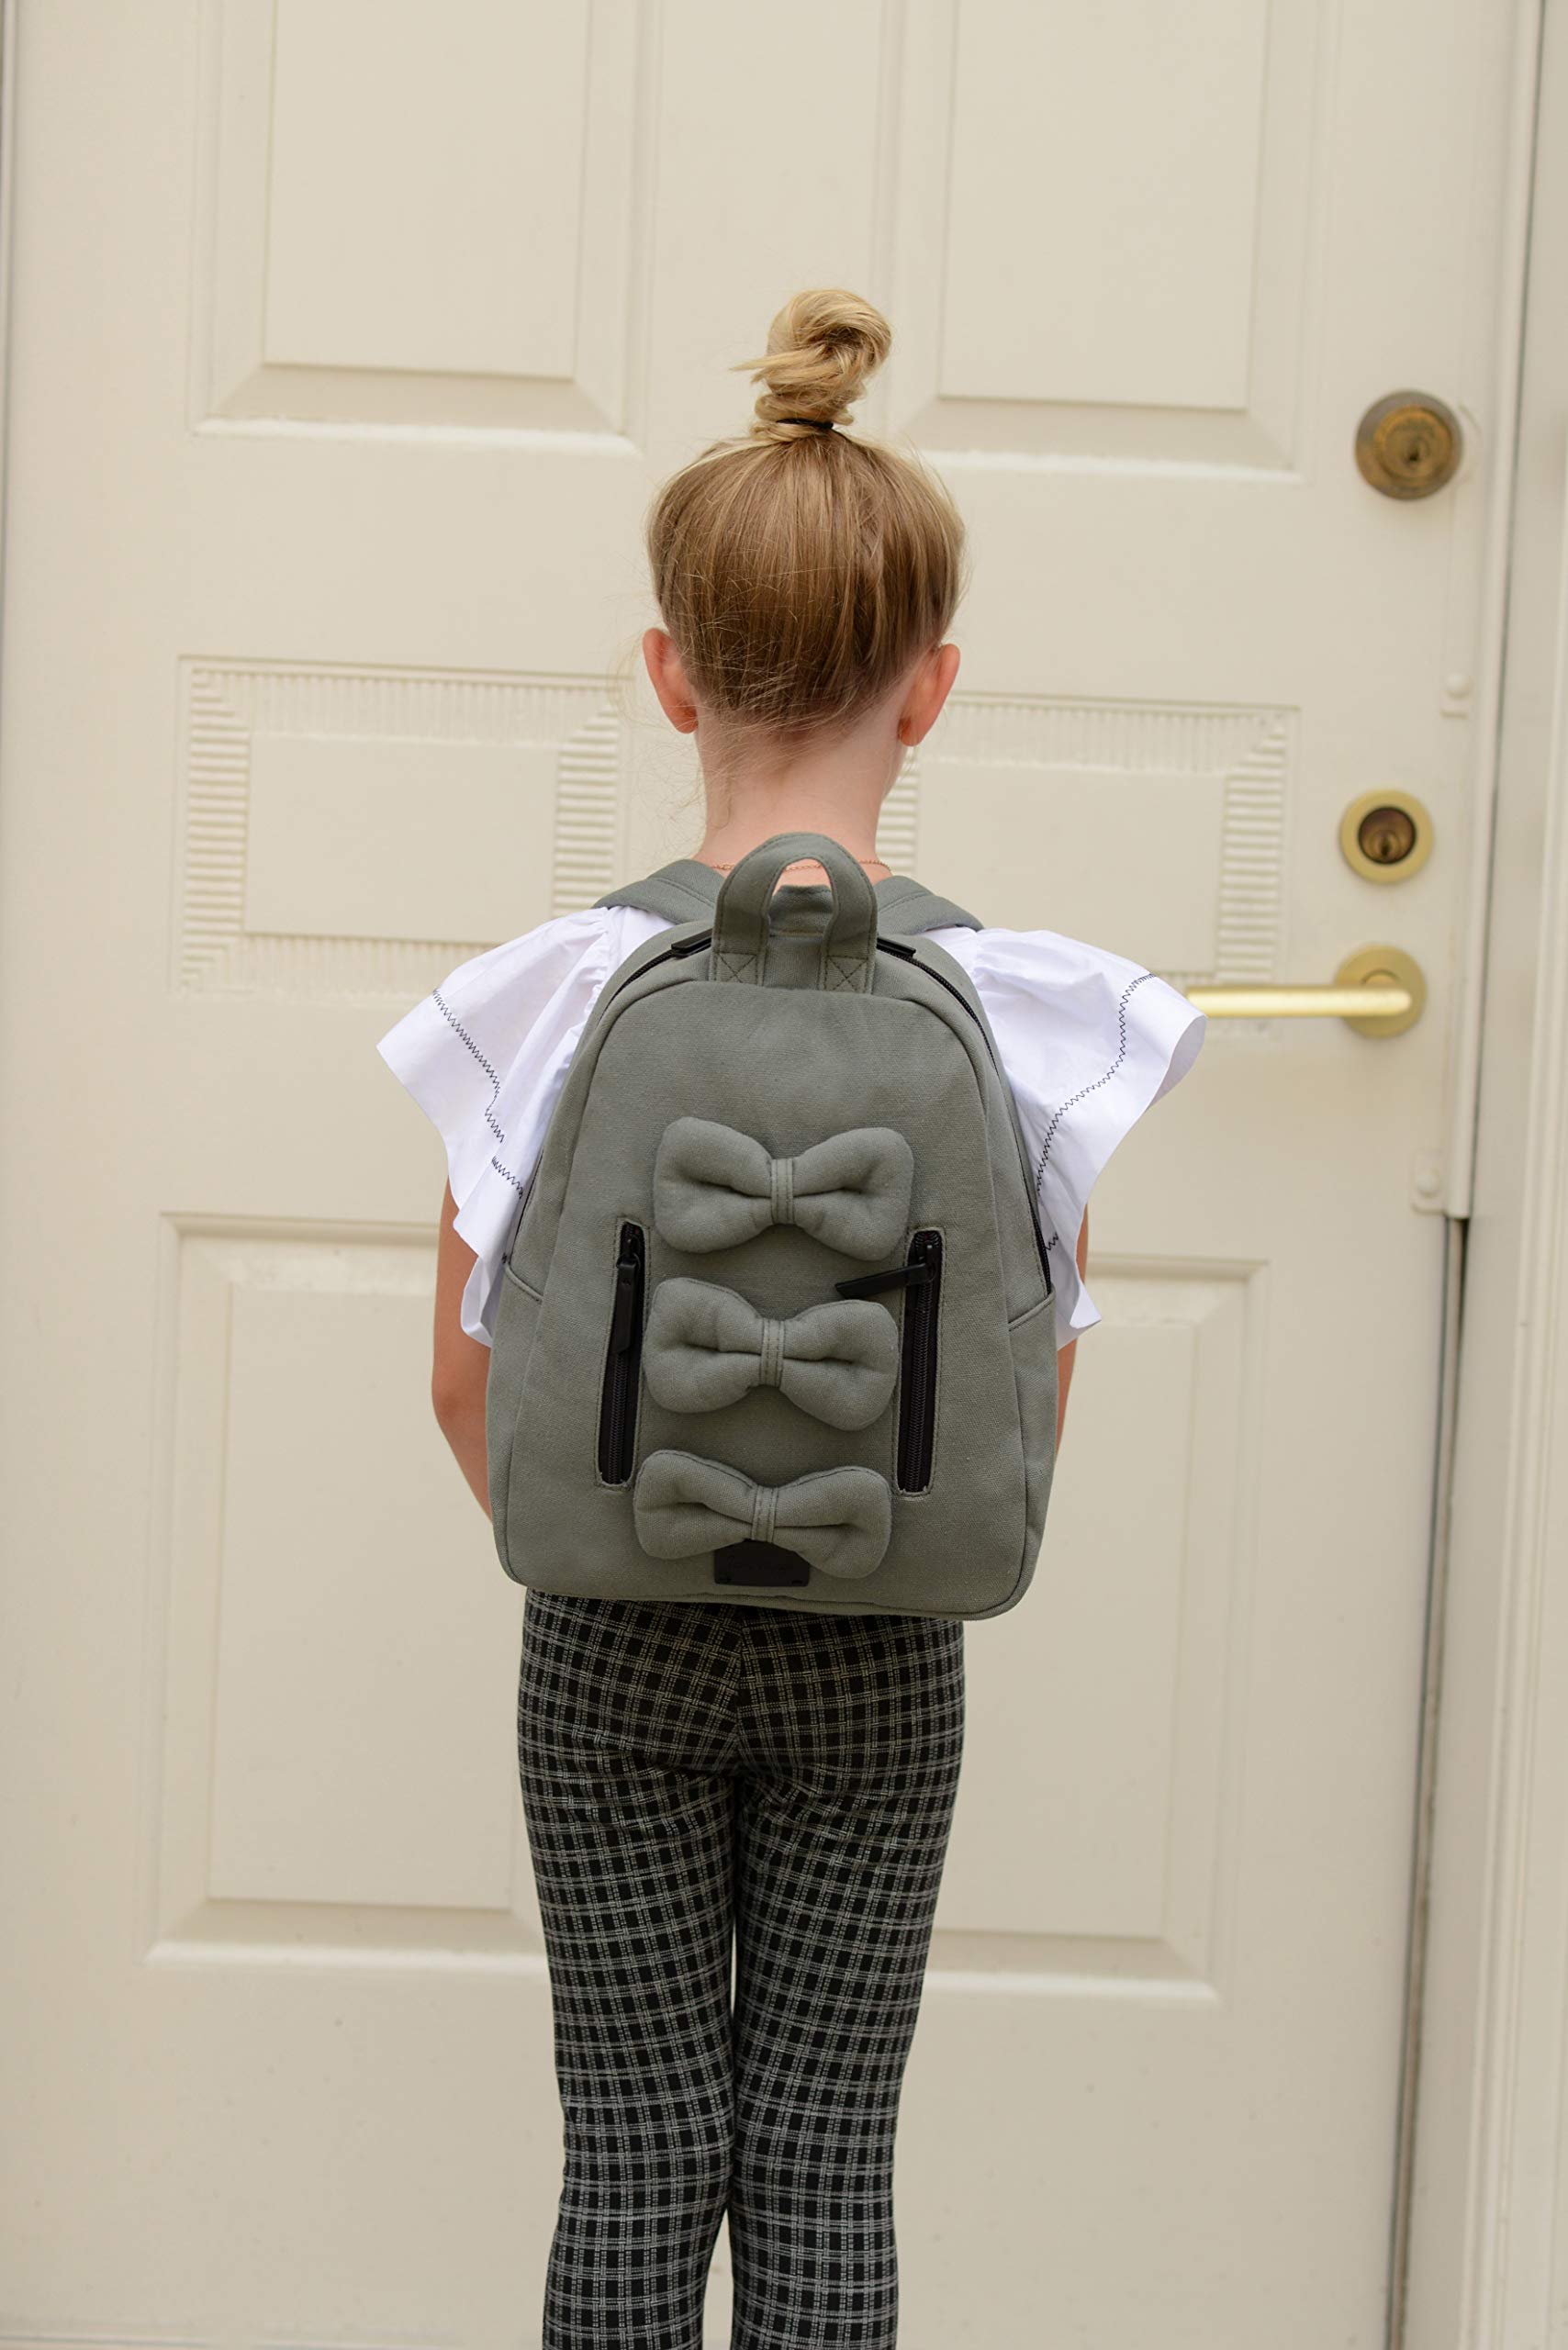 7AM Voyage Mini Bows Cotton Backpack, Toddlers, Kids and Teens School Backpack (Shadow) by 7AM Voyage (Image #2)